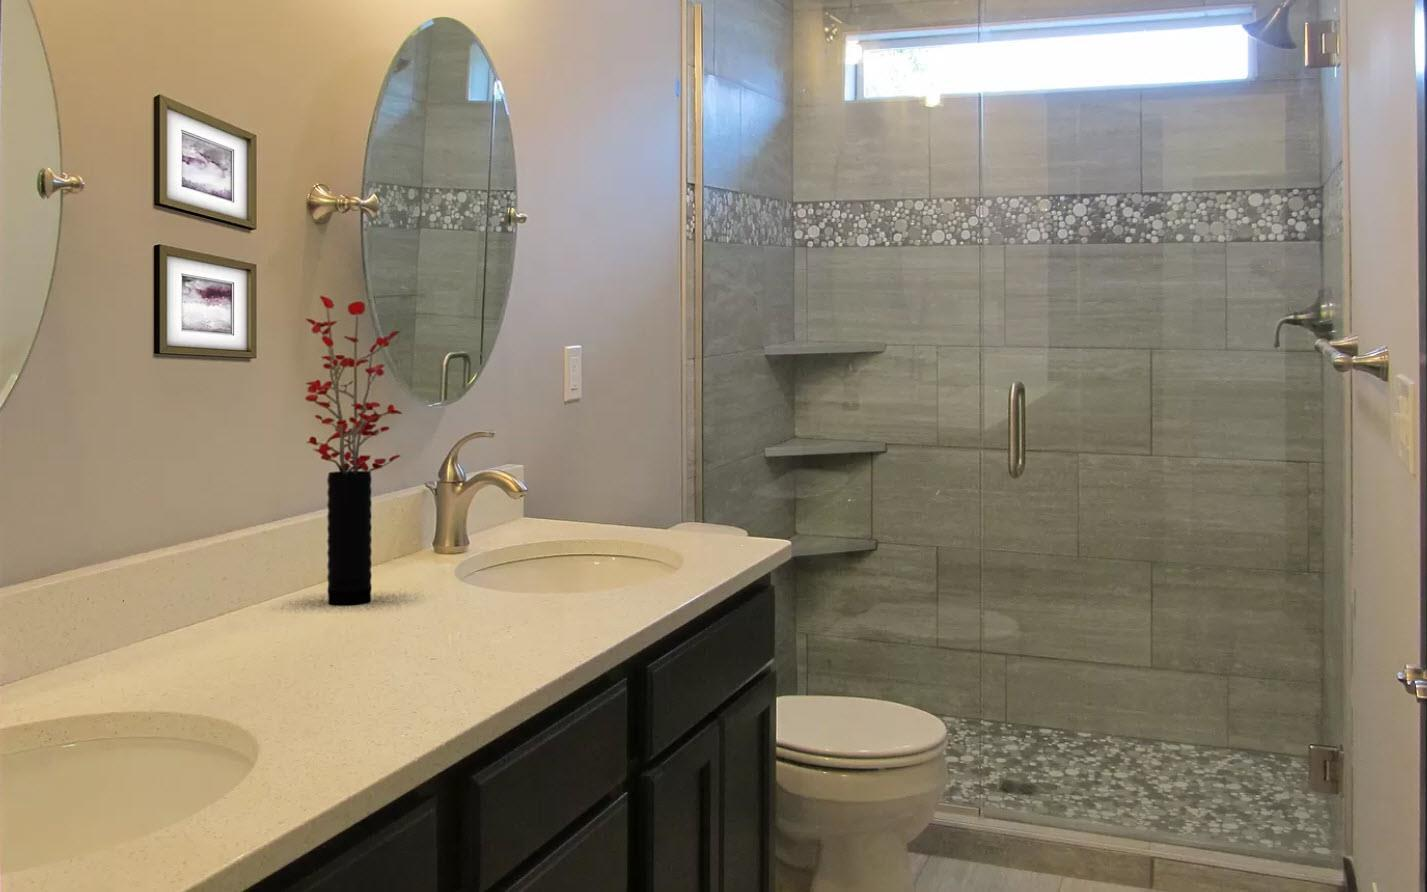 Bathroom featured in the Stanford IV By Oak Ridge Homes in Lansing, MI